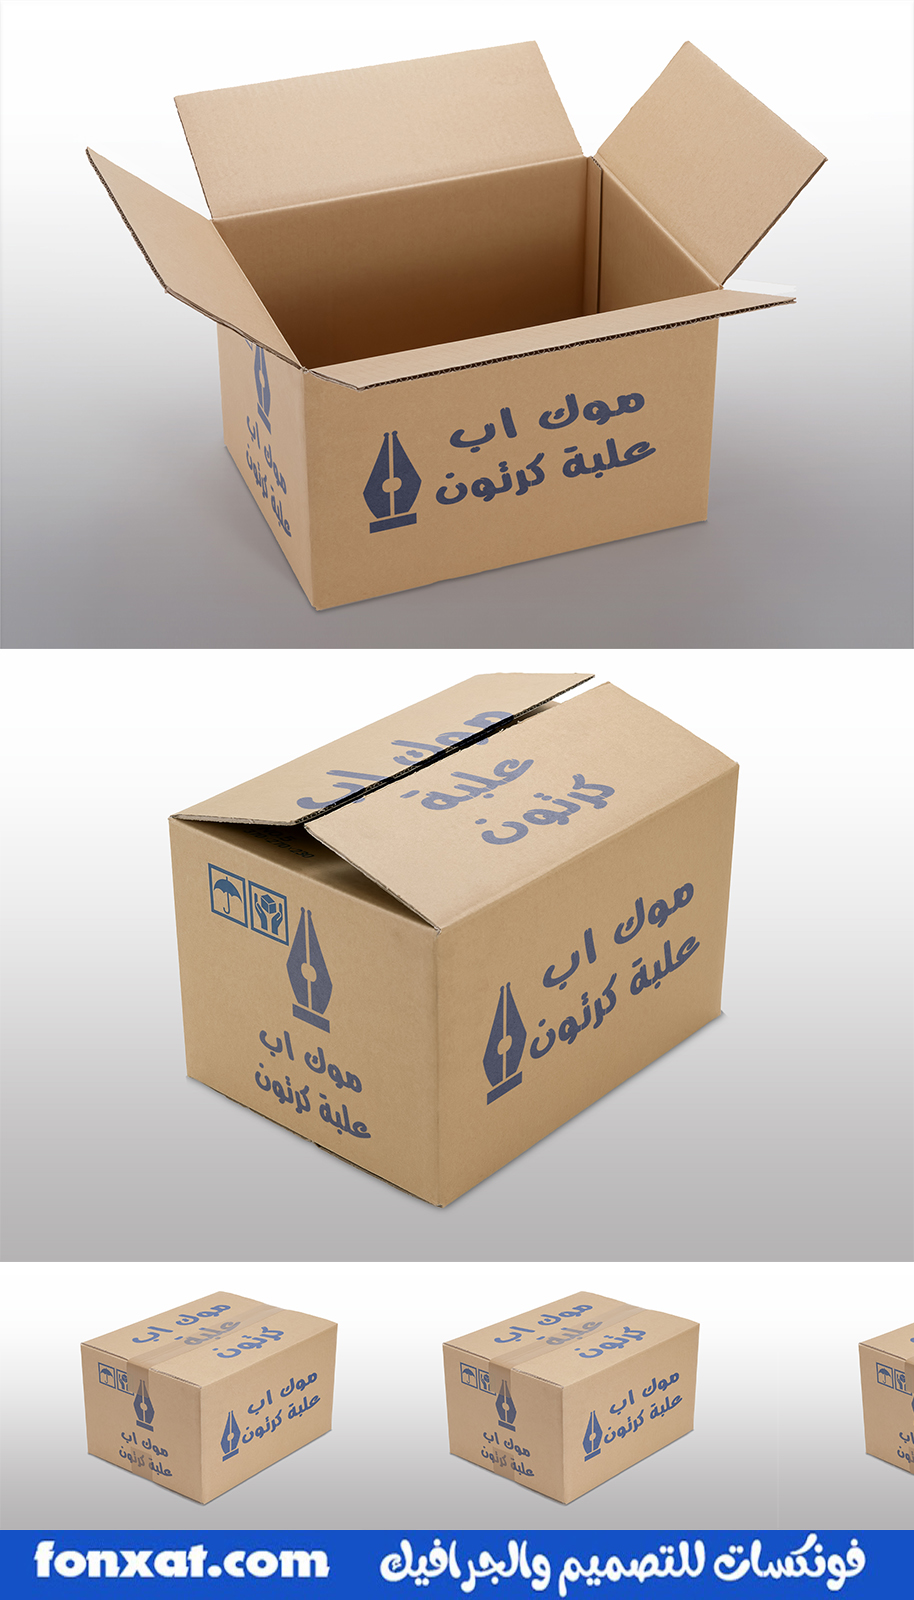 Mock-up box, carton for packing cans, bottles, soft drinks